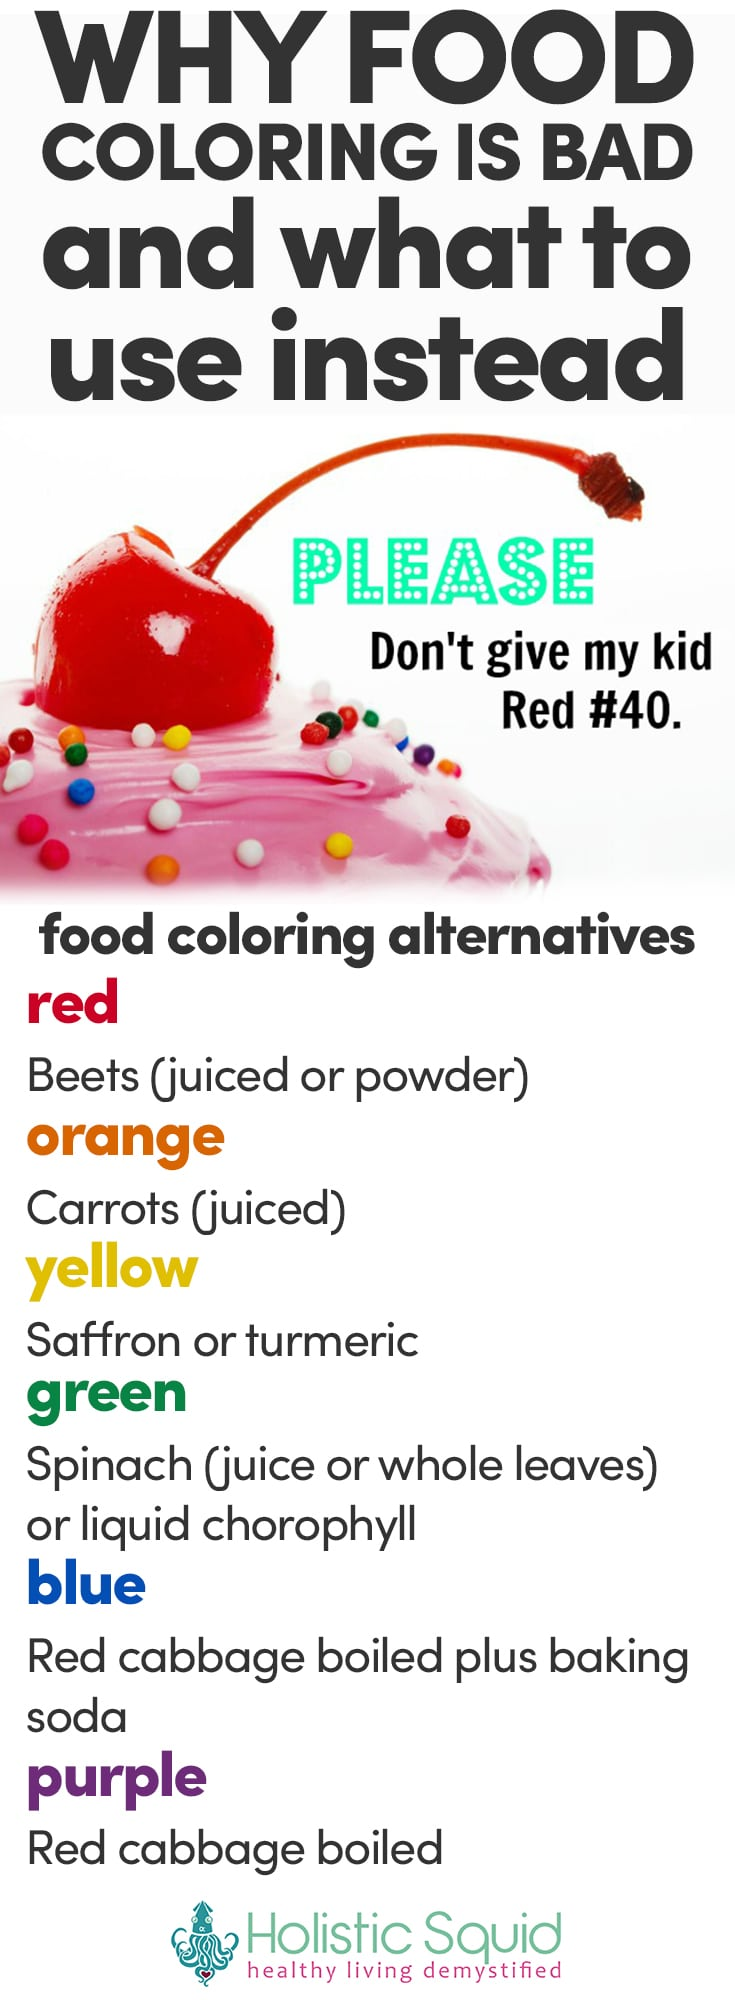 Why Food Coloring Is Bad & What To Use Instead